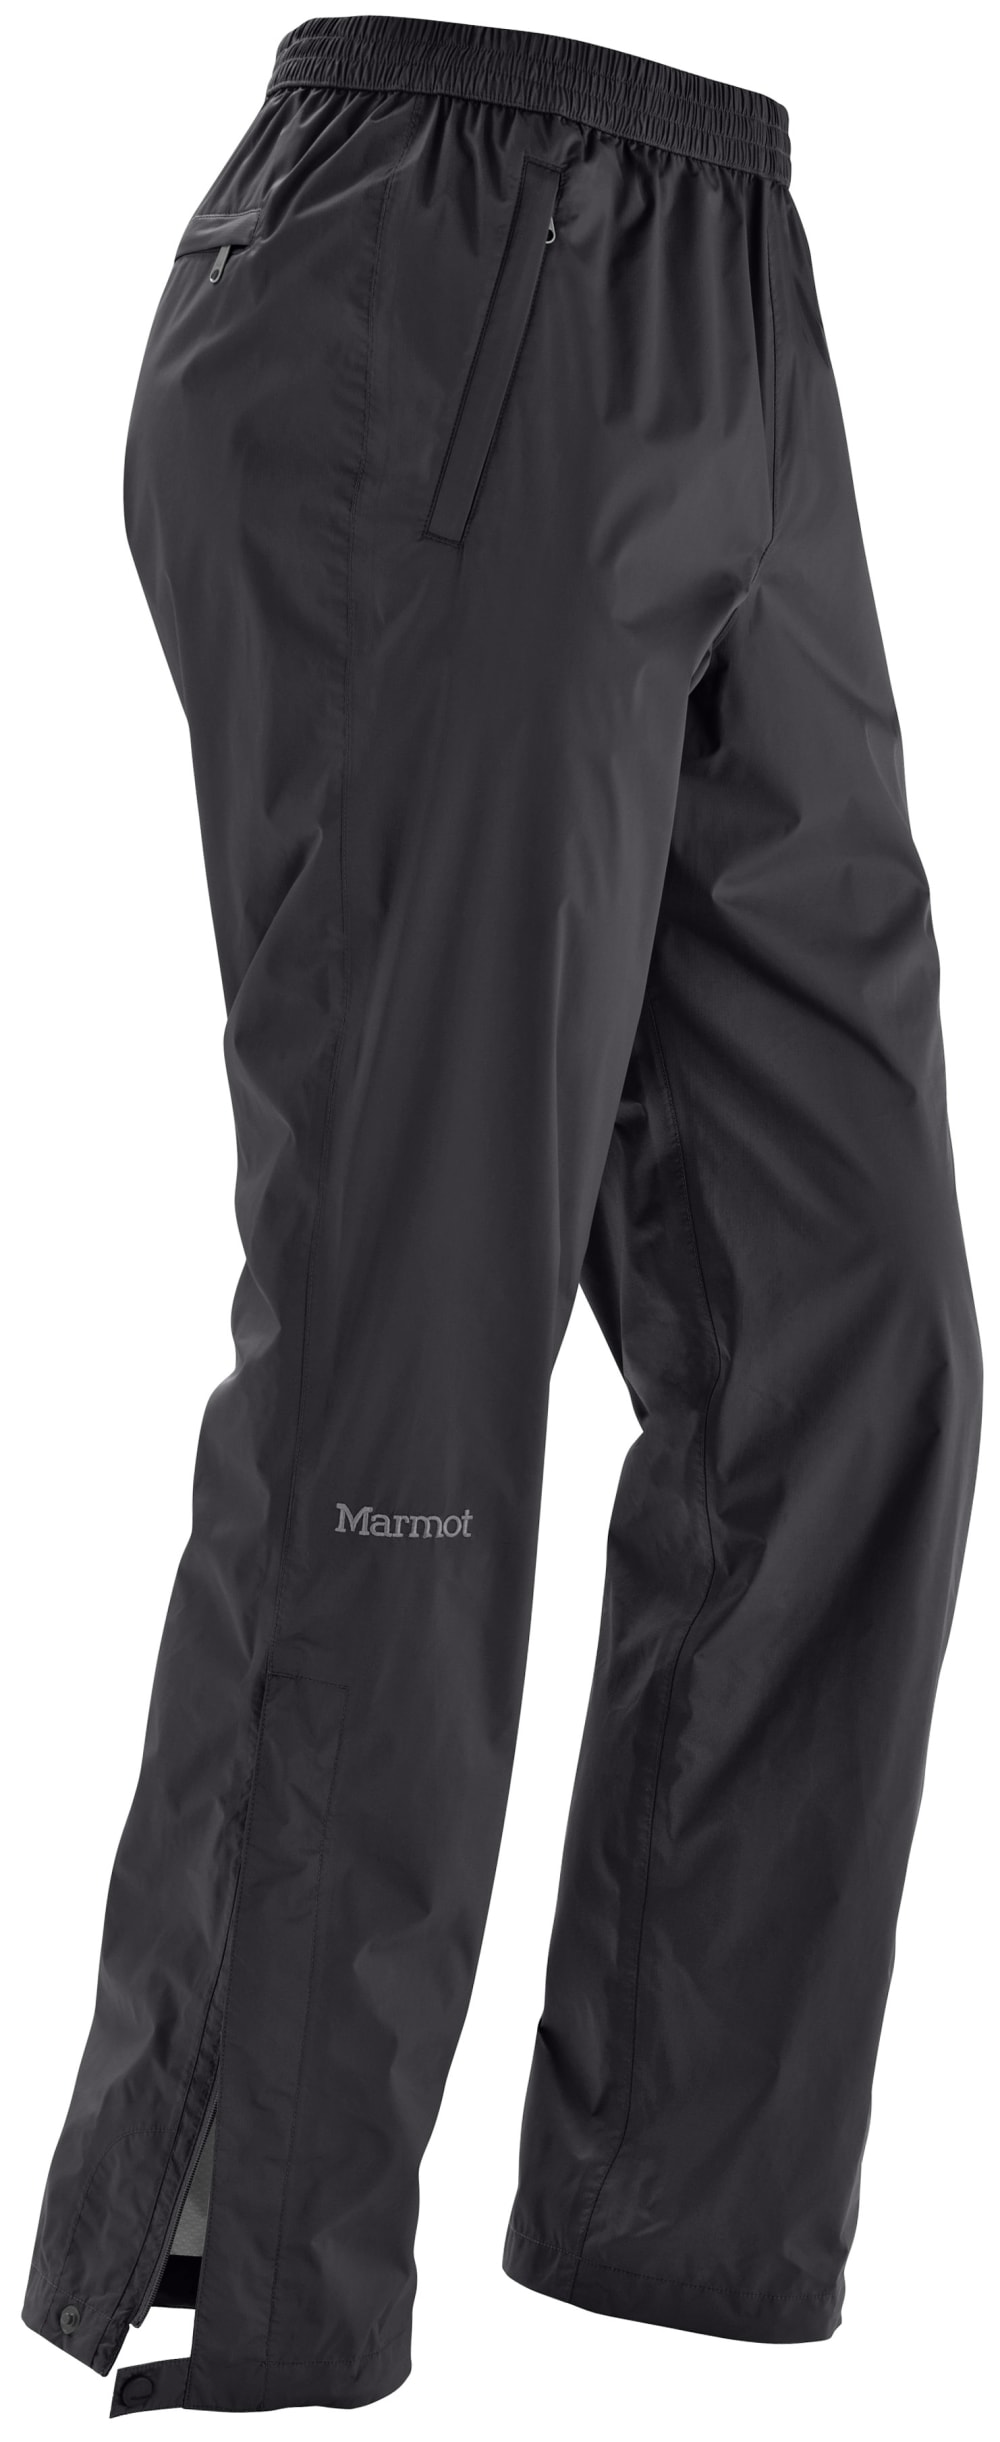 MARMOT Men's PreCip Pants - 001-BLACK